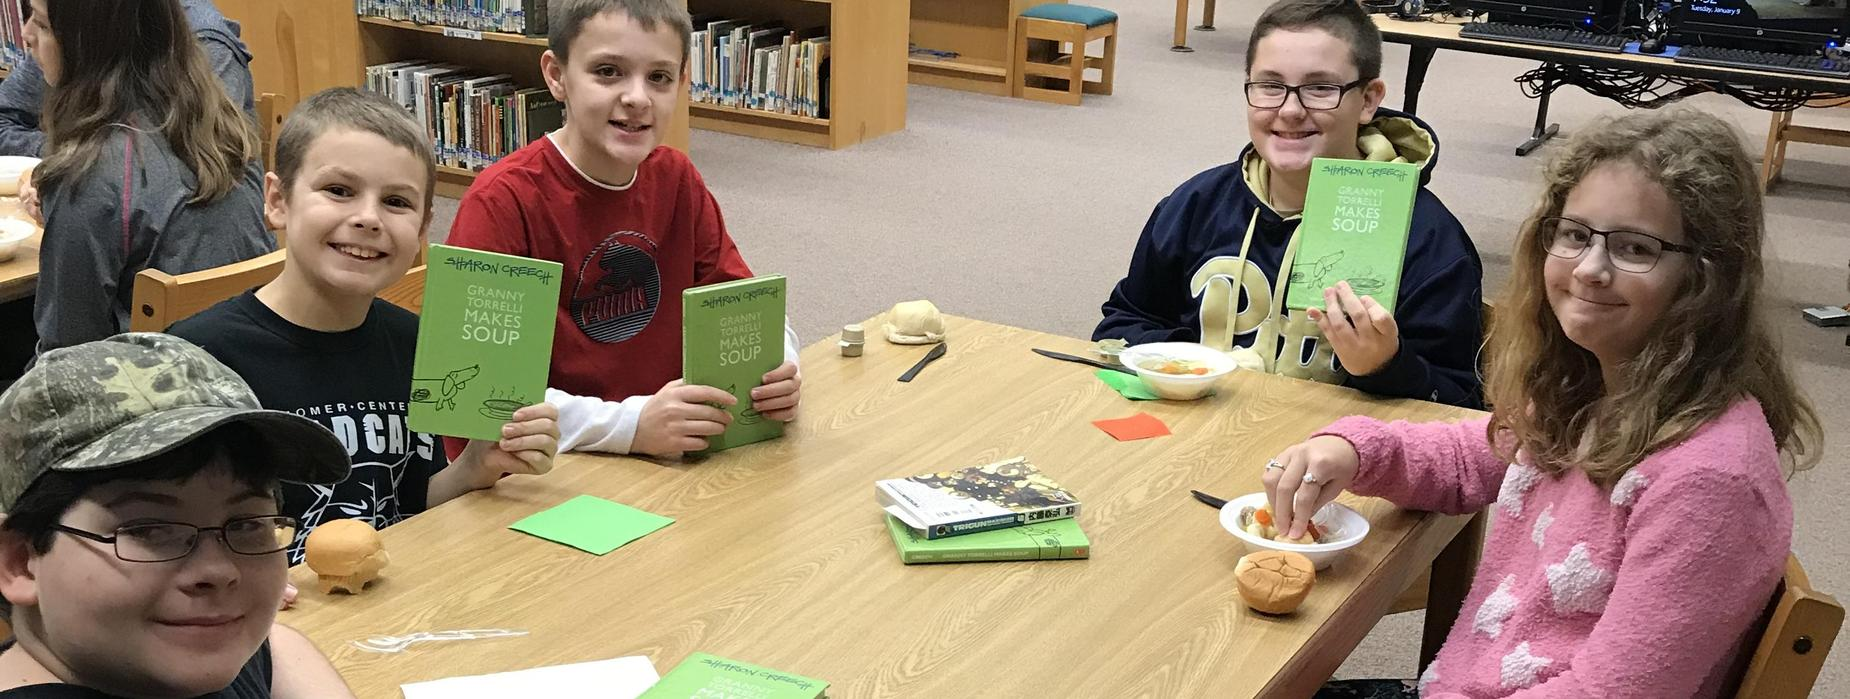 Several elementary students sitting at a table in the library with food as part of the Breakfast Book Club.